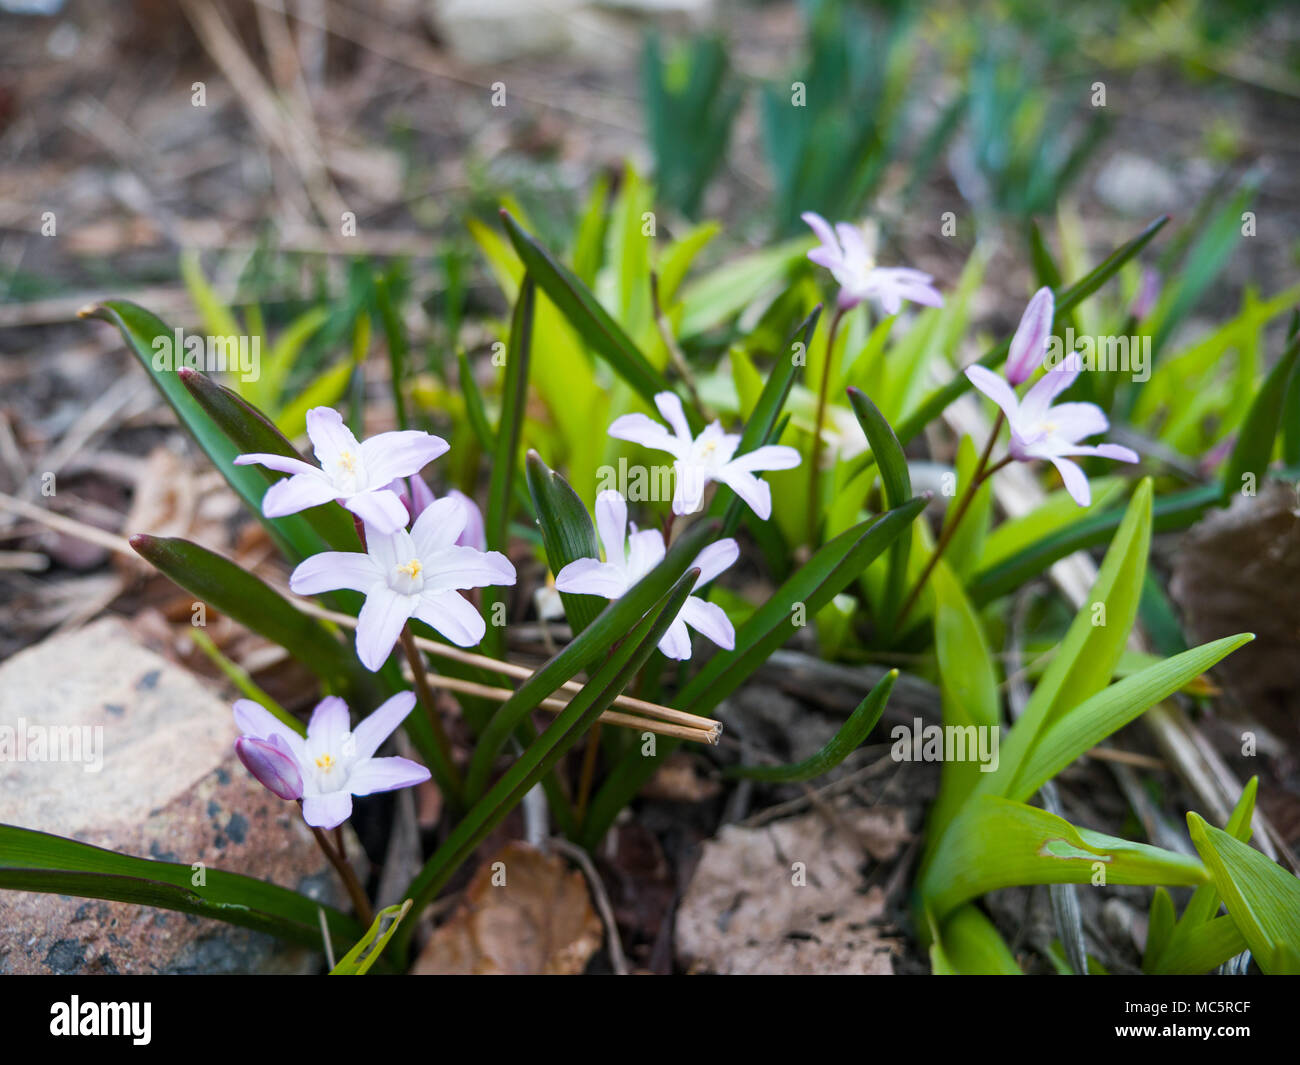 Small glory of the snow or chionodoxa small light purple perennial small glory of the snow or chionodoxa small light purple perennial flowers blooming in the spring in a flower bed with blurred bokeh background mightylinksfo